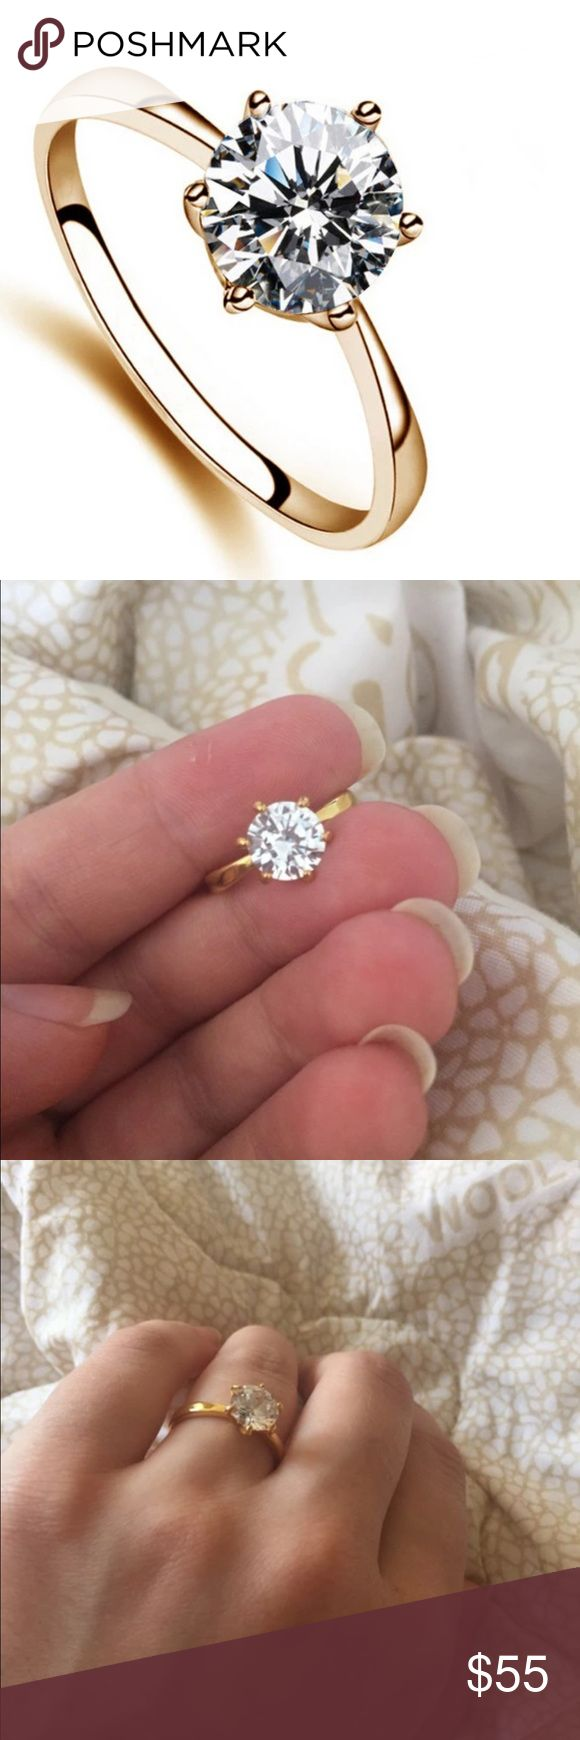 New 18 k yellow gold engagement ring Brand new 18 k yellow gold filled with lab created diamonds engagement wedding ring. Also have wedding ring sets, engagement rings , wedding bands in my listing for sale. Available in all sizes. Swarovski Jewelry Rings